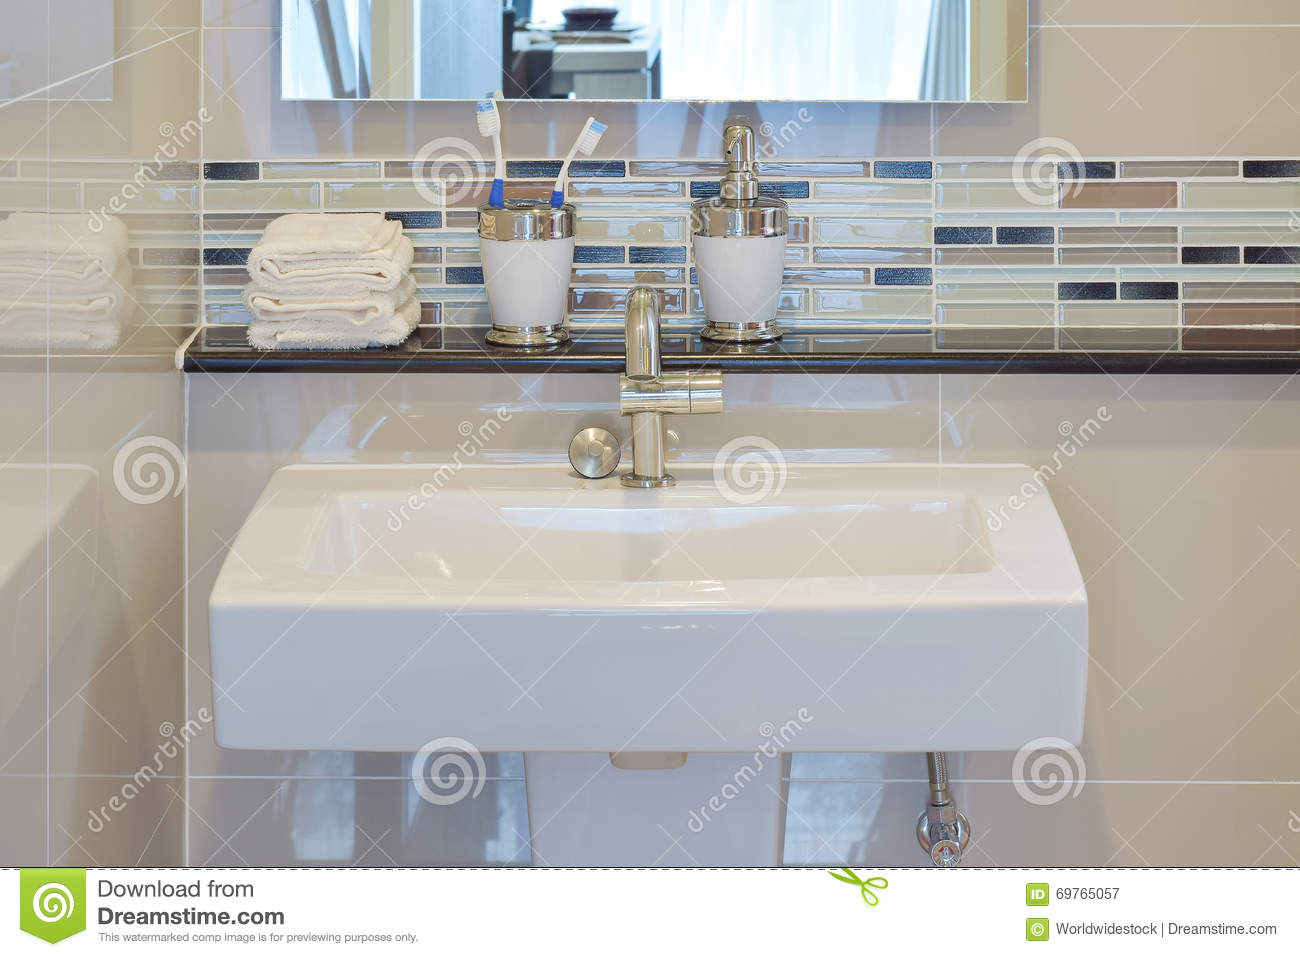 Lavatory And Accessories With Mosaic Wall Stock Image - Image of ...